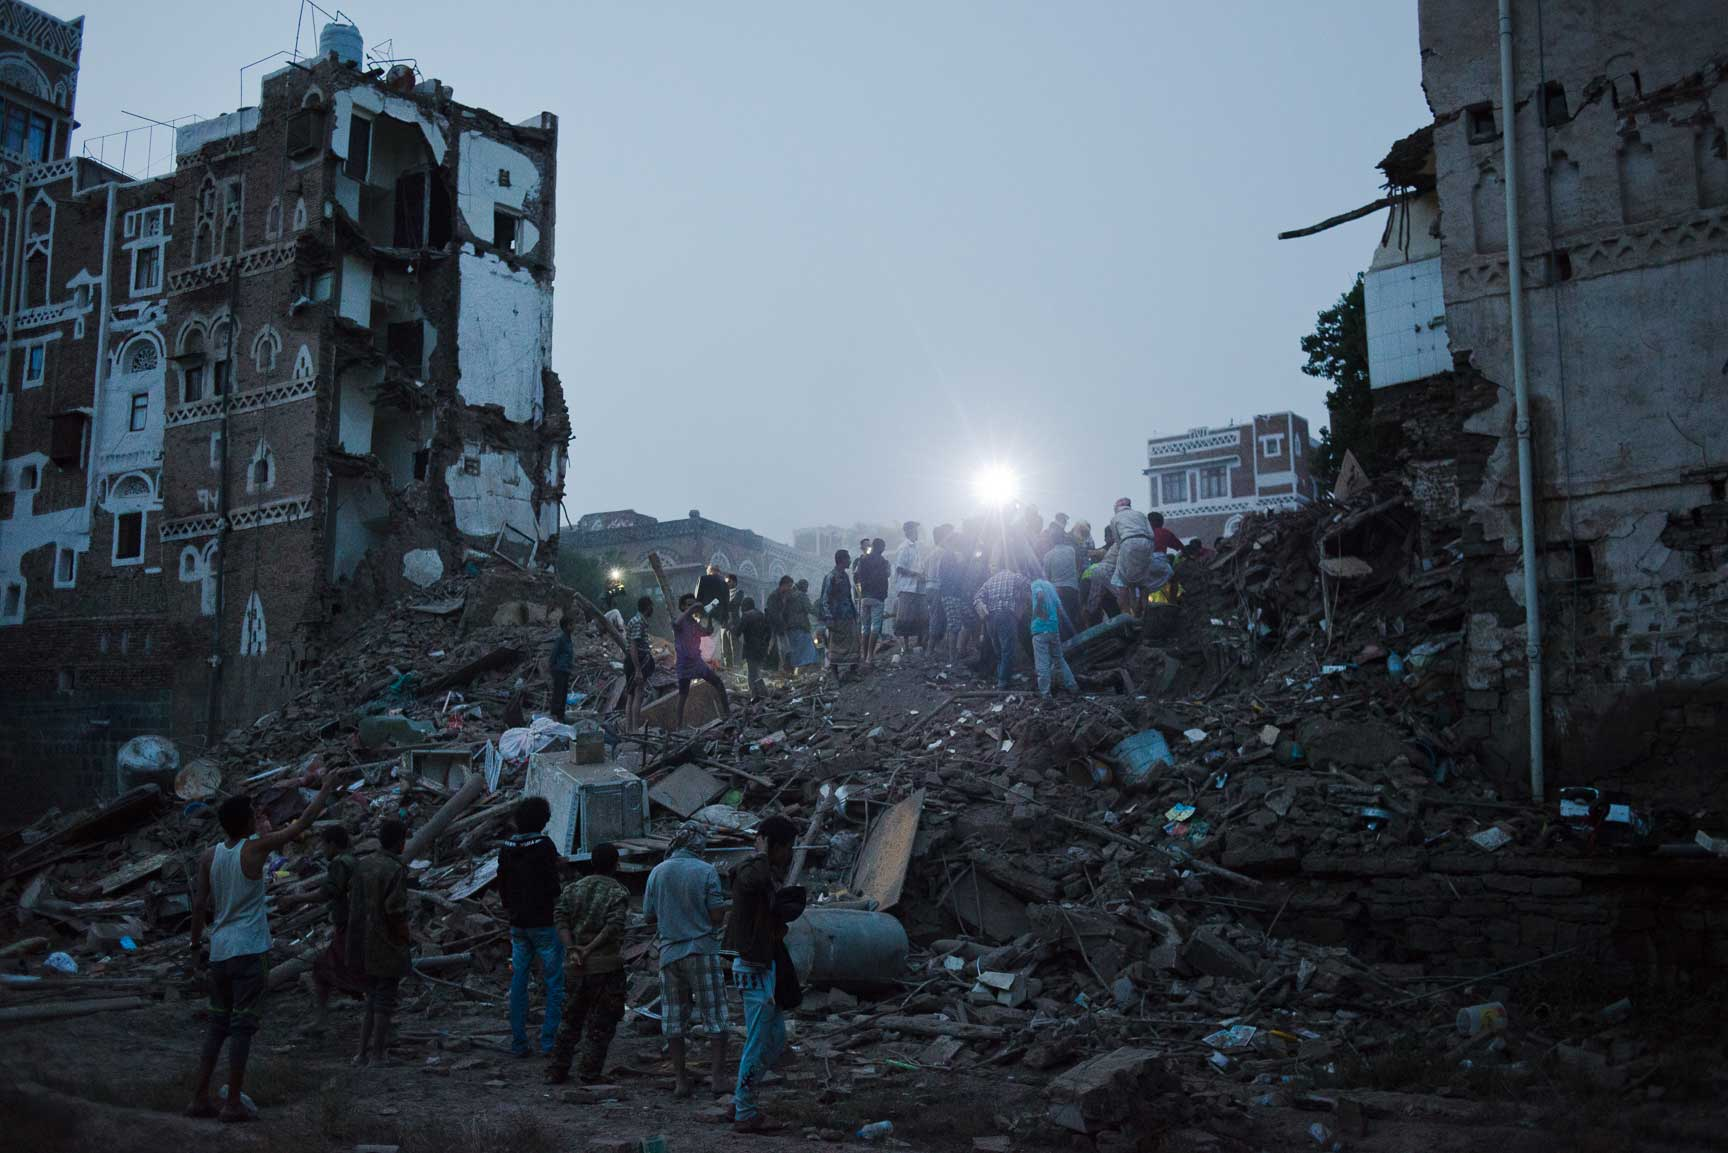 Yemeni men from al Qasimi neighborhood dig through the remains of four homes destroyed in an airstrike Friday, June 12, 2015 in Sana'a, Yemen. The Old City of Sana'a is a UNESCO World Heritage Site, is a densely populated civilian area. The Saudi-led coalition denied hitting the Old City.